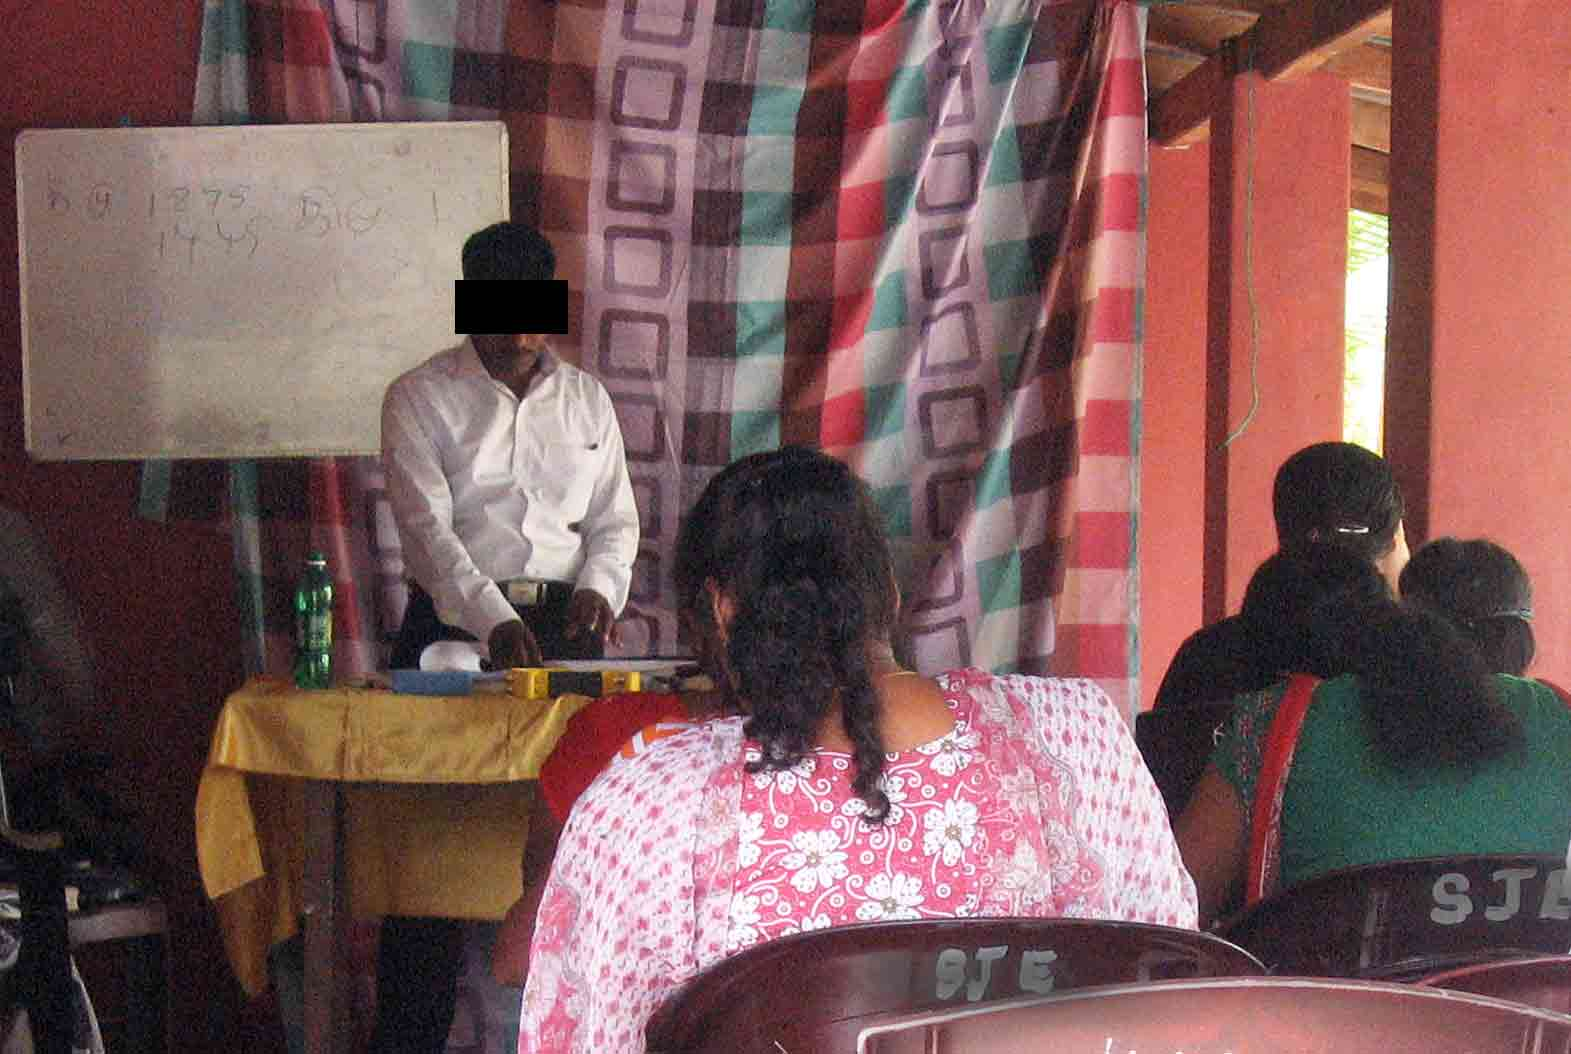 Pastors in Sri Lanka face constant threats for their ministry.